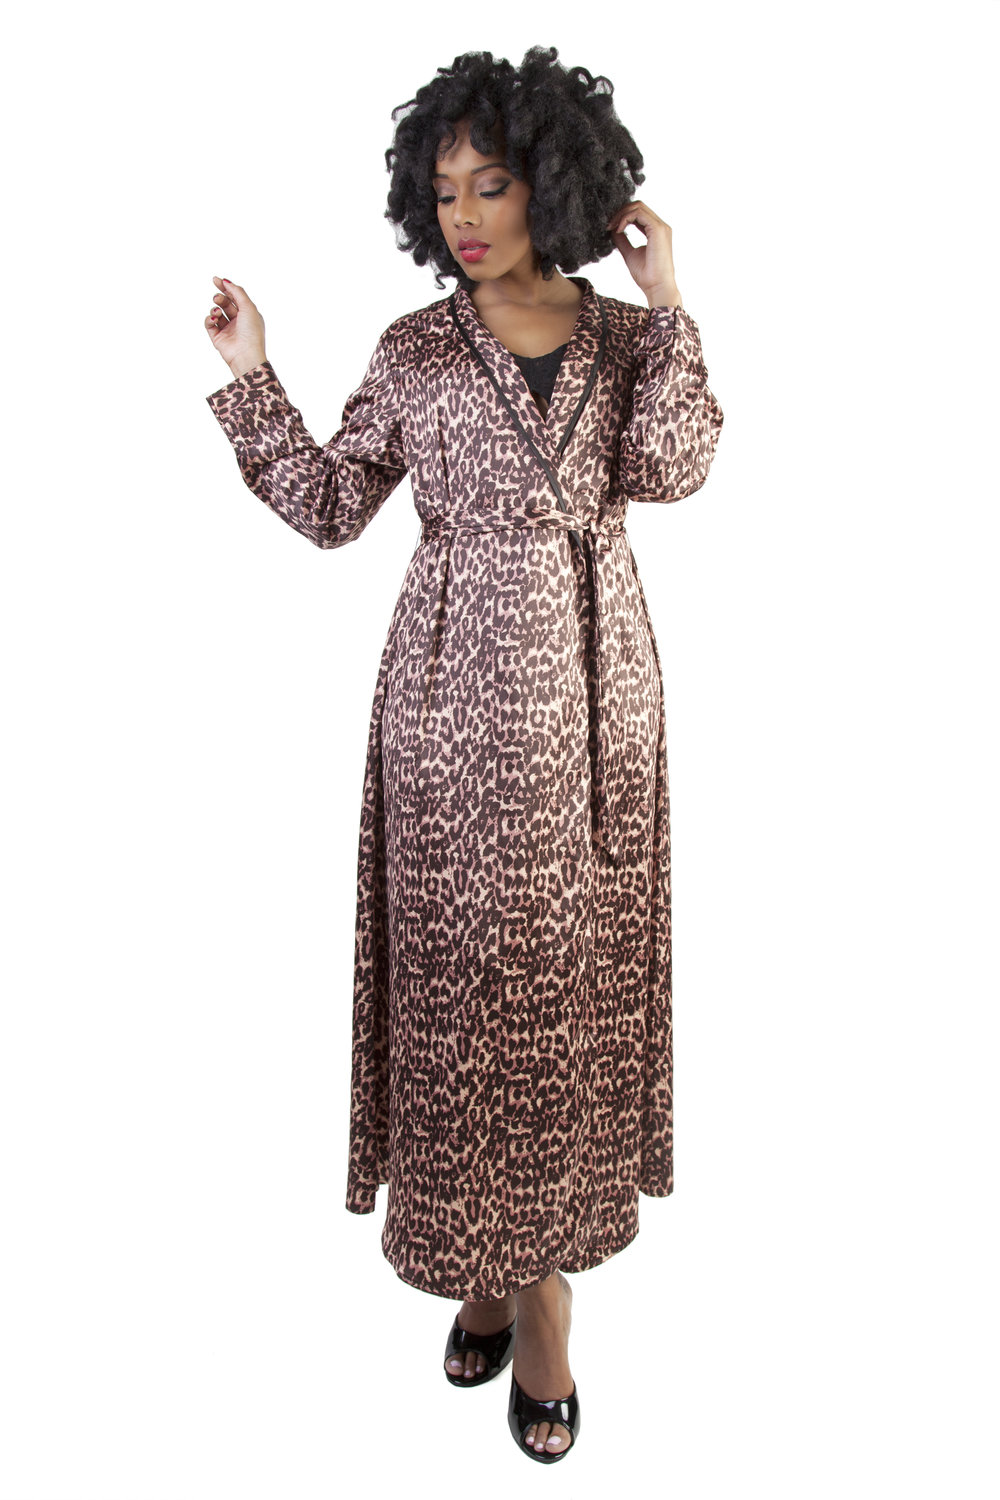 Bettie Page leopard robe.jpg